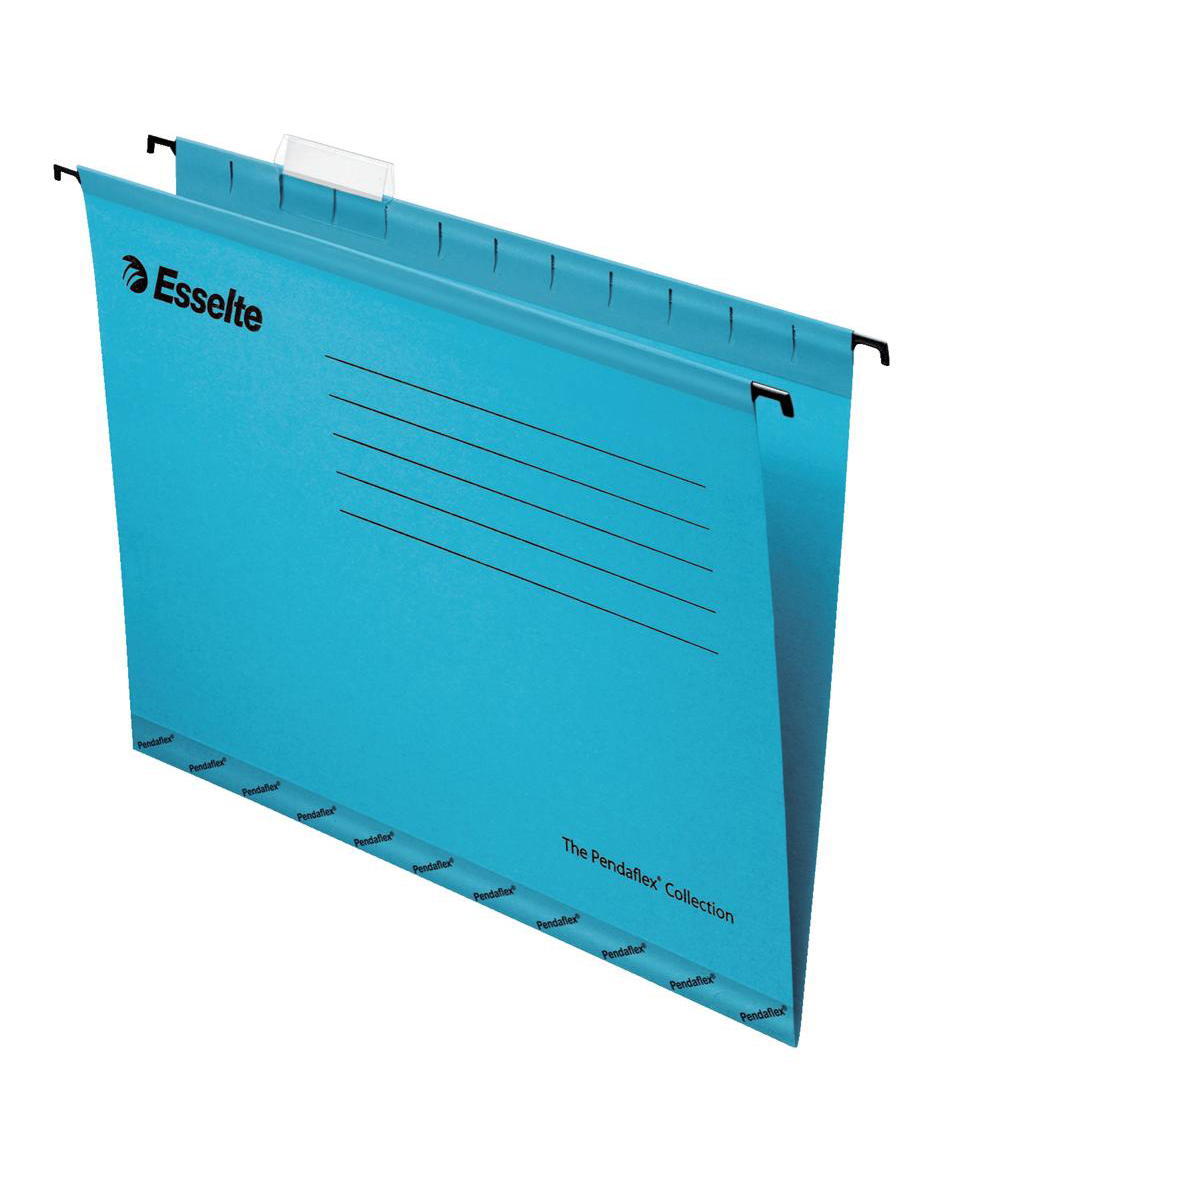 Esselte Classic Reinforced Suspension File Manilla 15mm V-base 210gsm Foolscap Blue Ref 90334 Pack 25